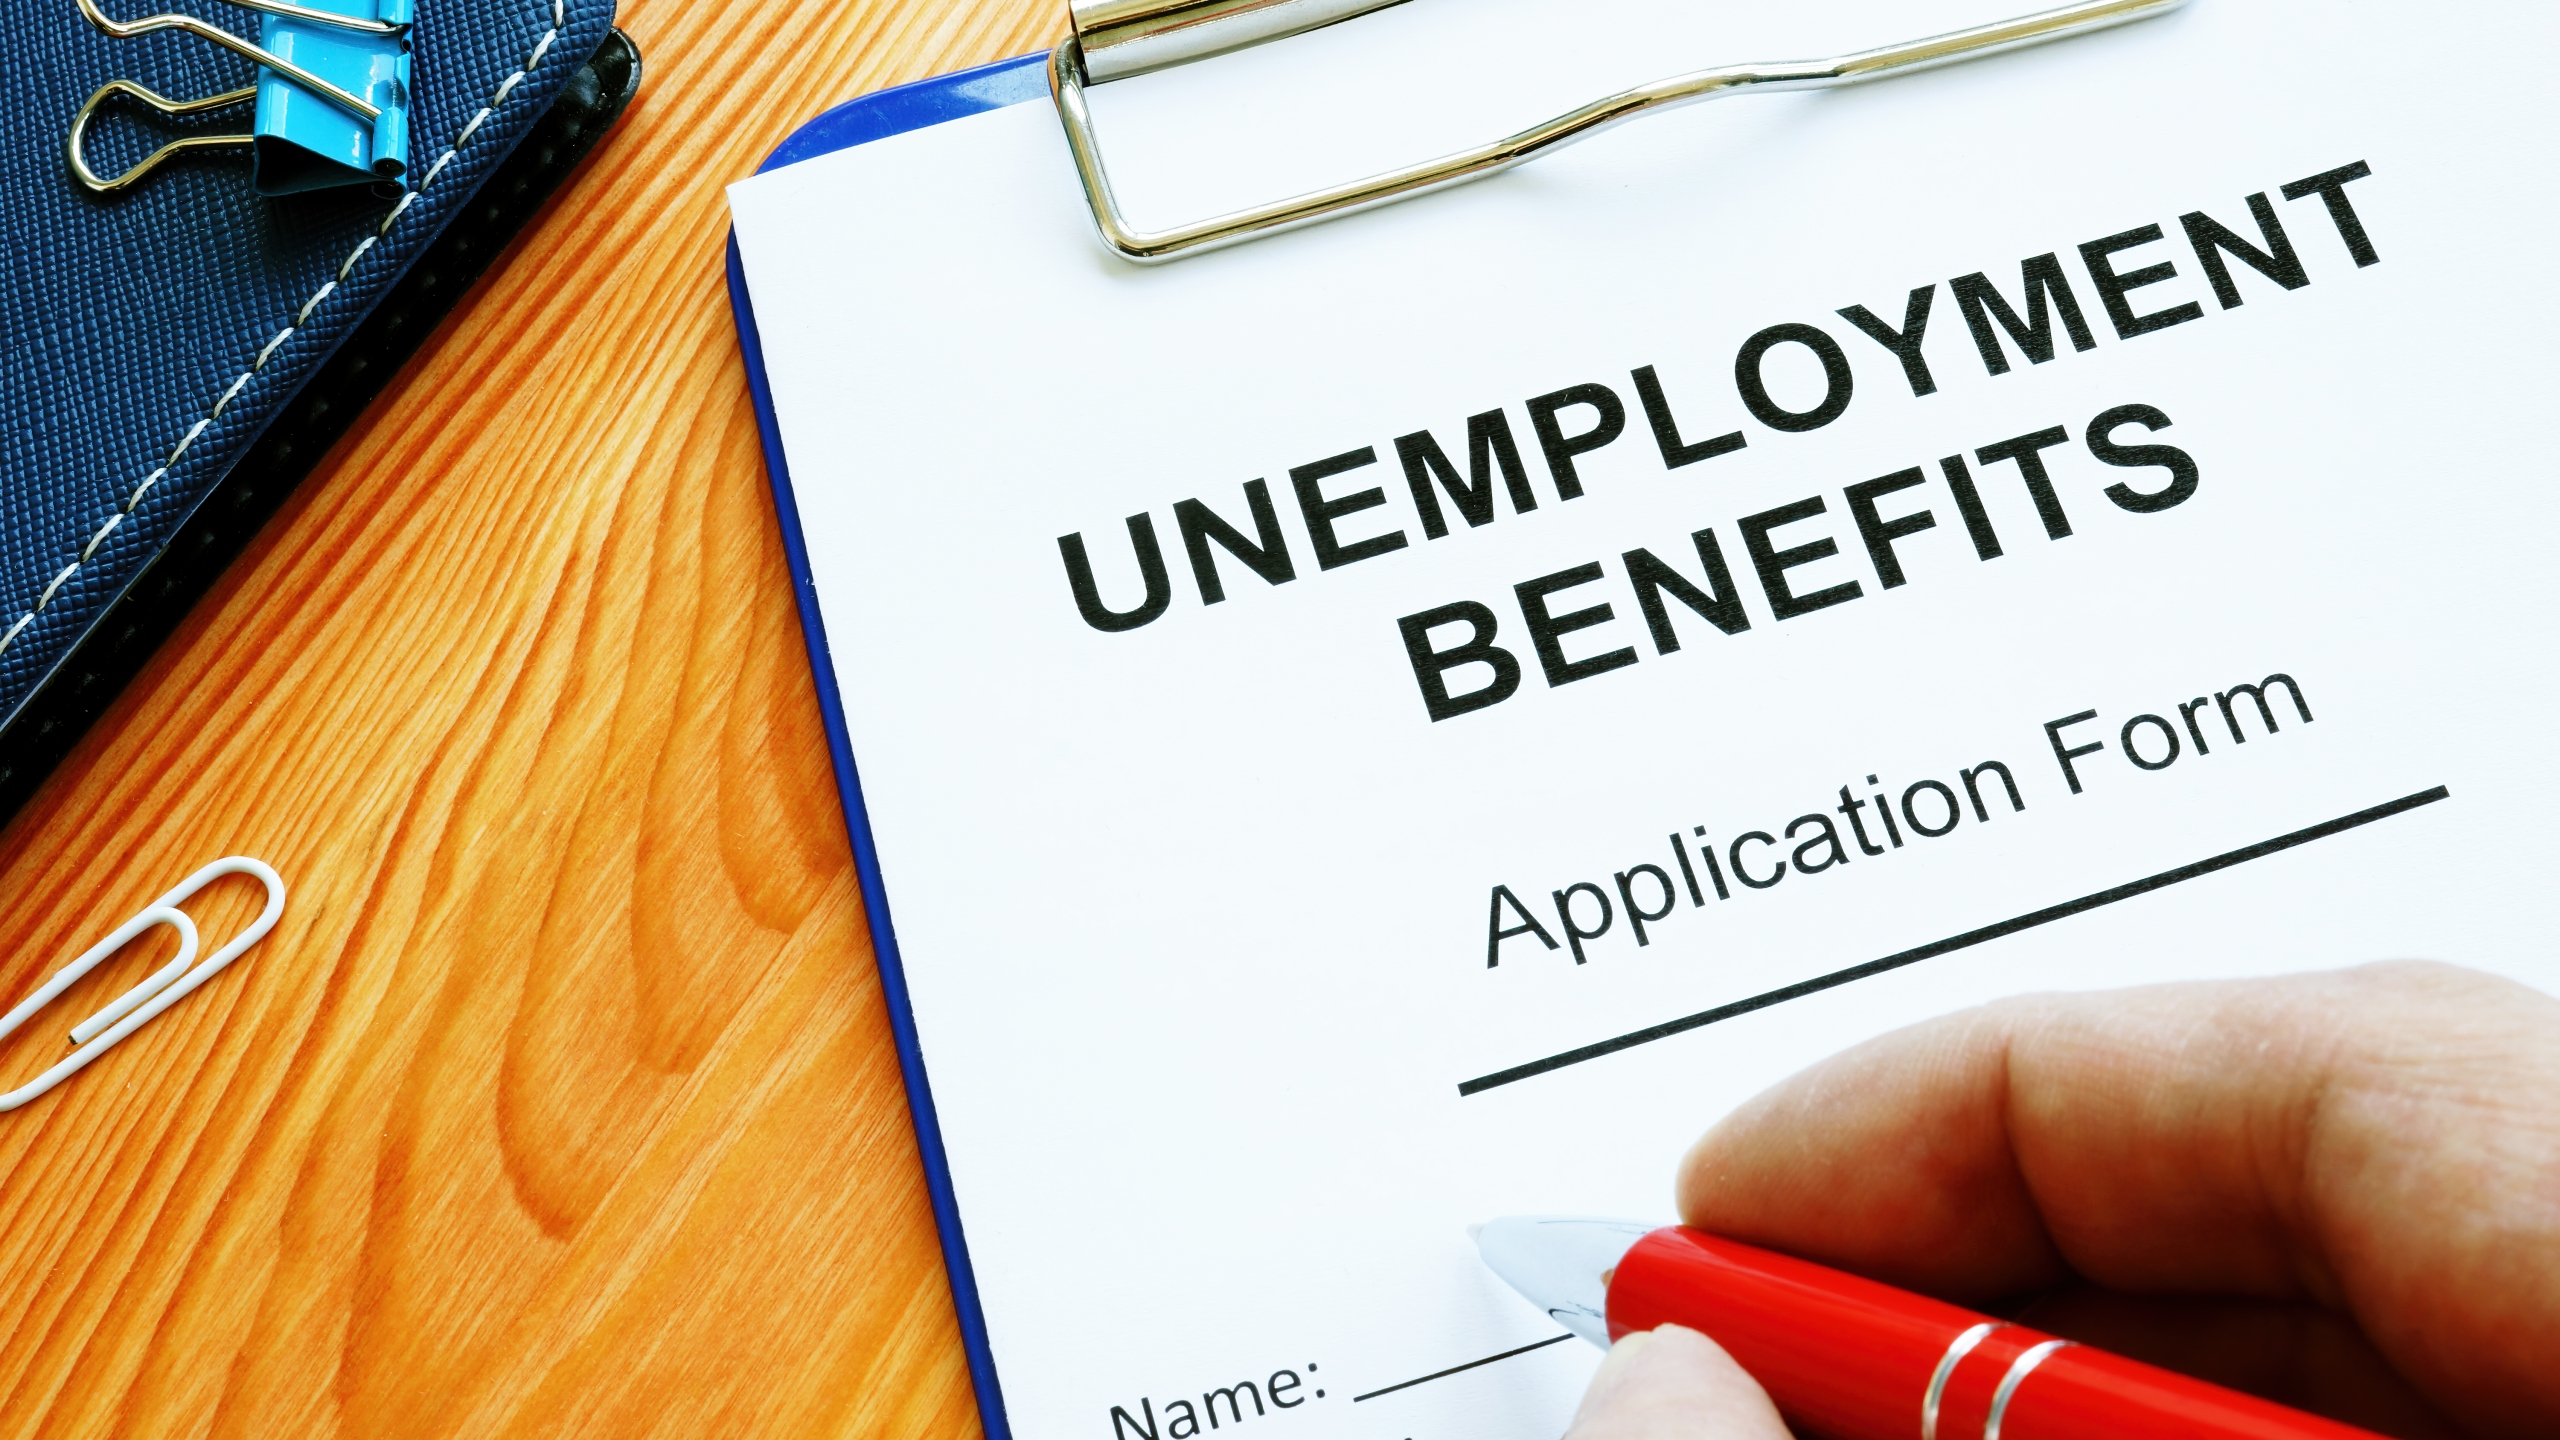 Tn Evaluating Executive Order Dealing With Unemployment Benefits Wate 6 On Your Side